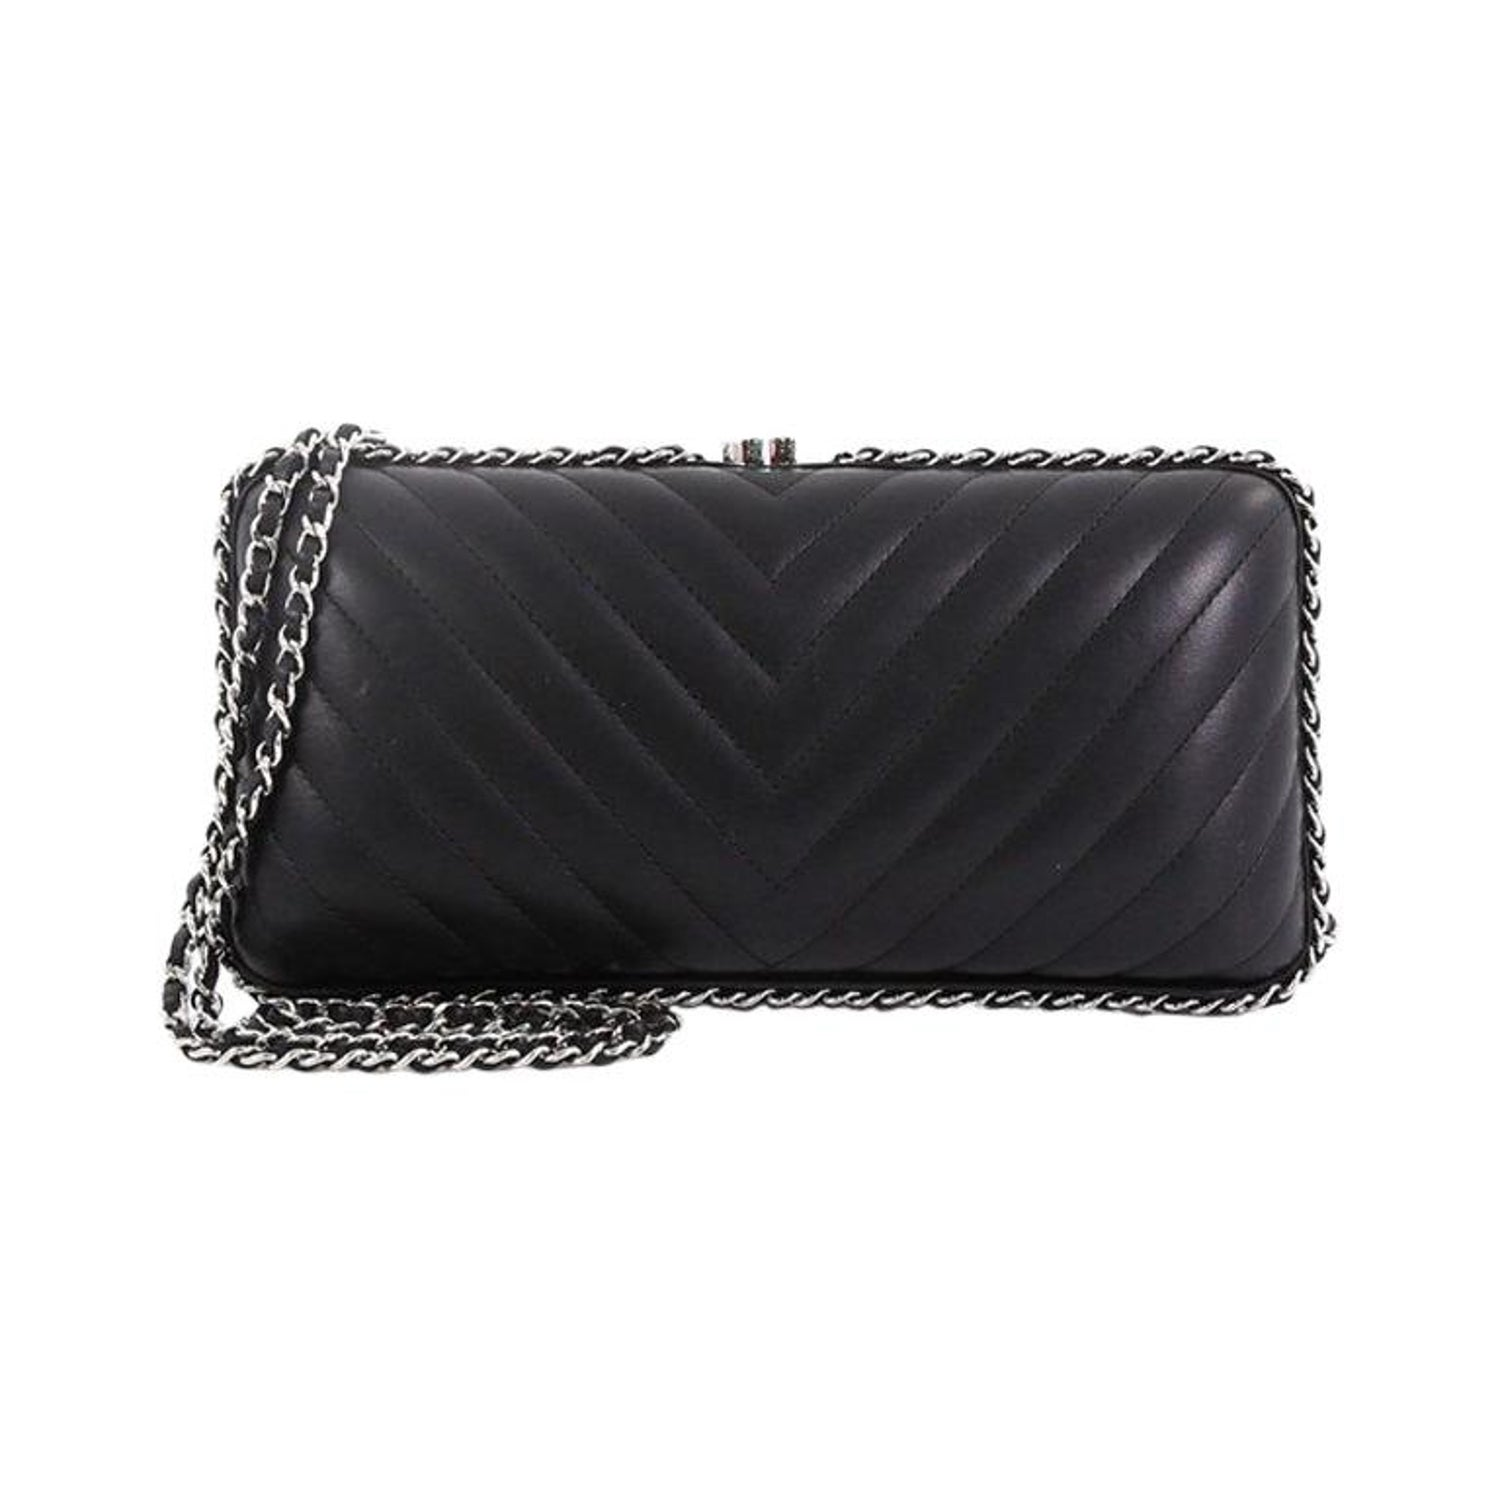 5ee8ef8c96be5f Chanel Chain Around Clutch Chevron Lambskin Small at 1stdibs